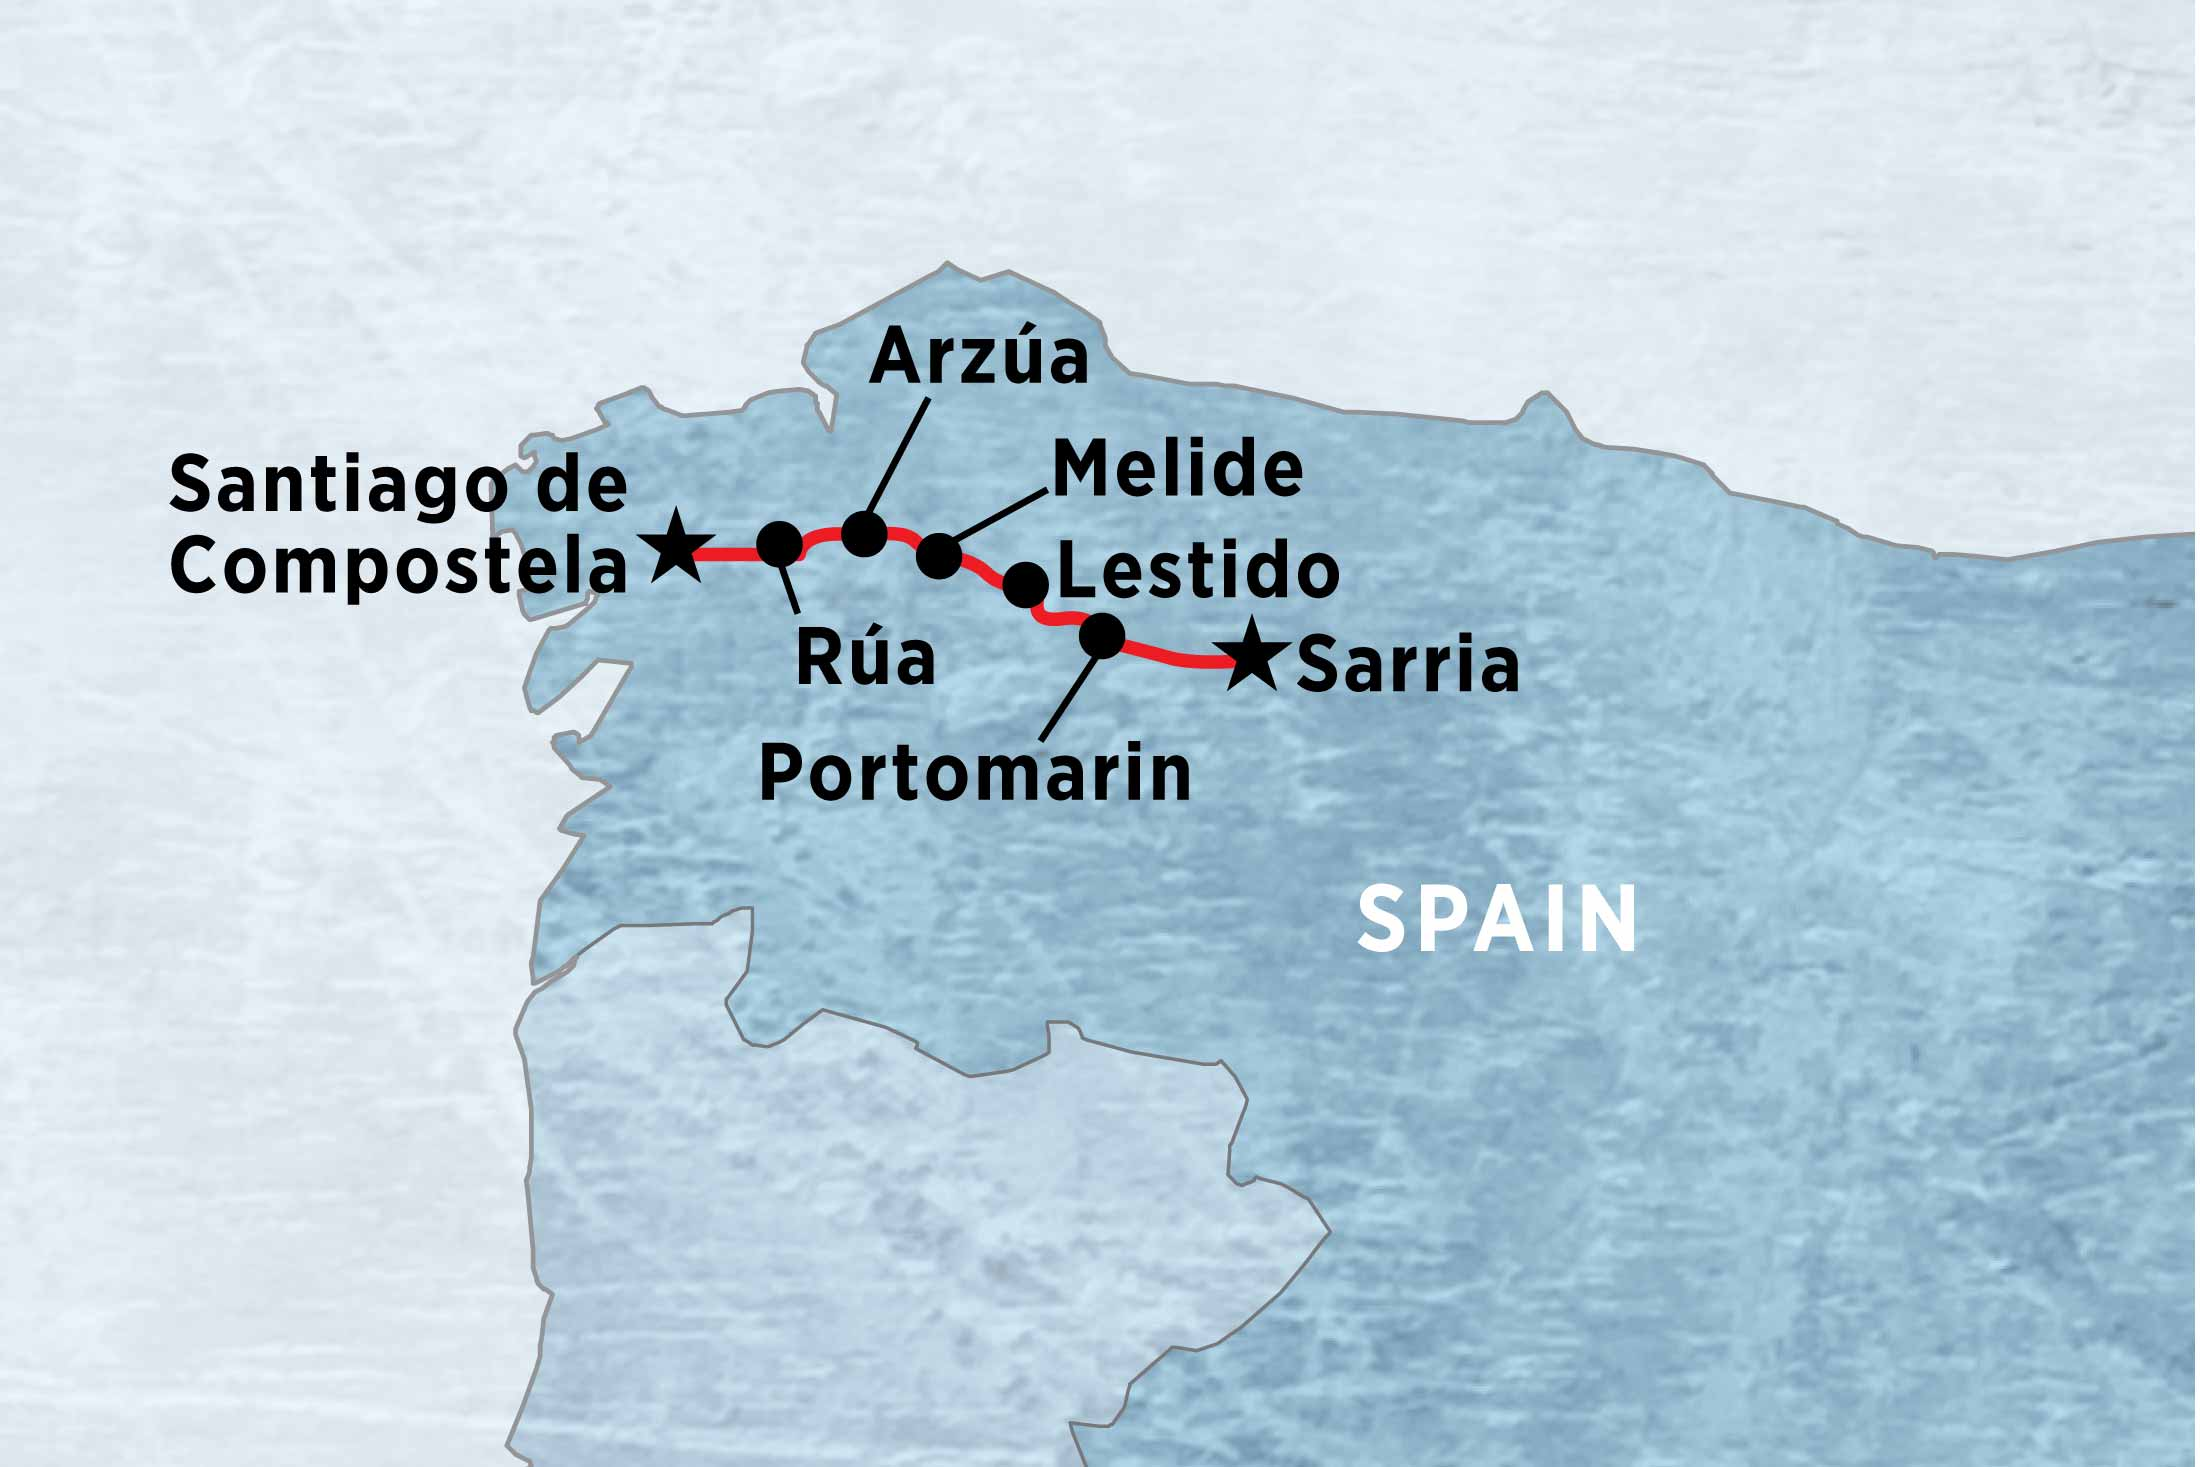 For over a thousand years, pilgrims have been walking the Camino de Santiago (the Way of St James). Here�s your chance to follow the trails of medieval pilgrims bound for Santiago de Compostela and have all the details taken care of � all you need to do is pack your bags!